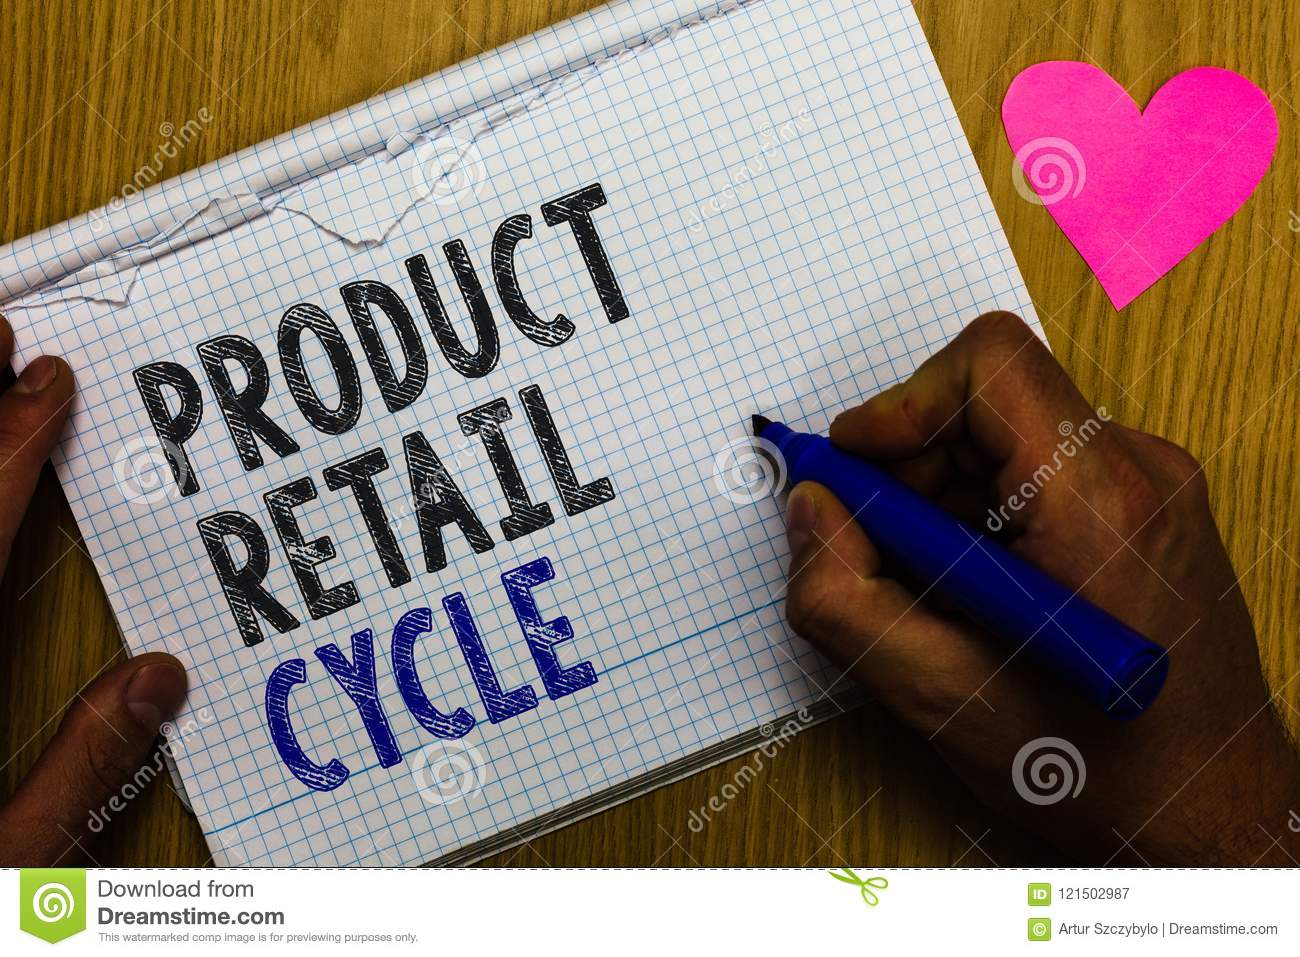 Handwriting Text Product Retail Cycle Concept Meaning As Brand